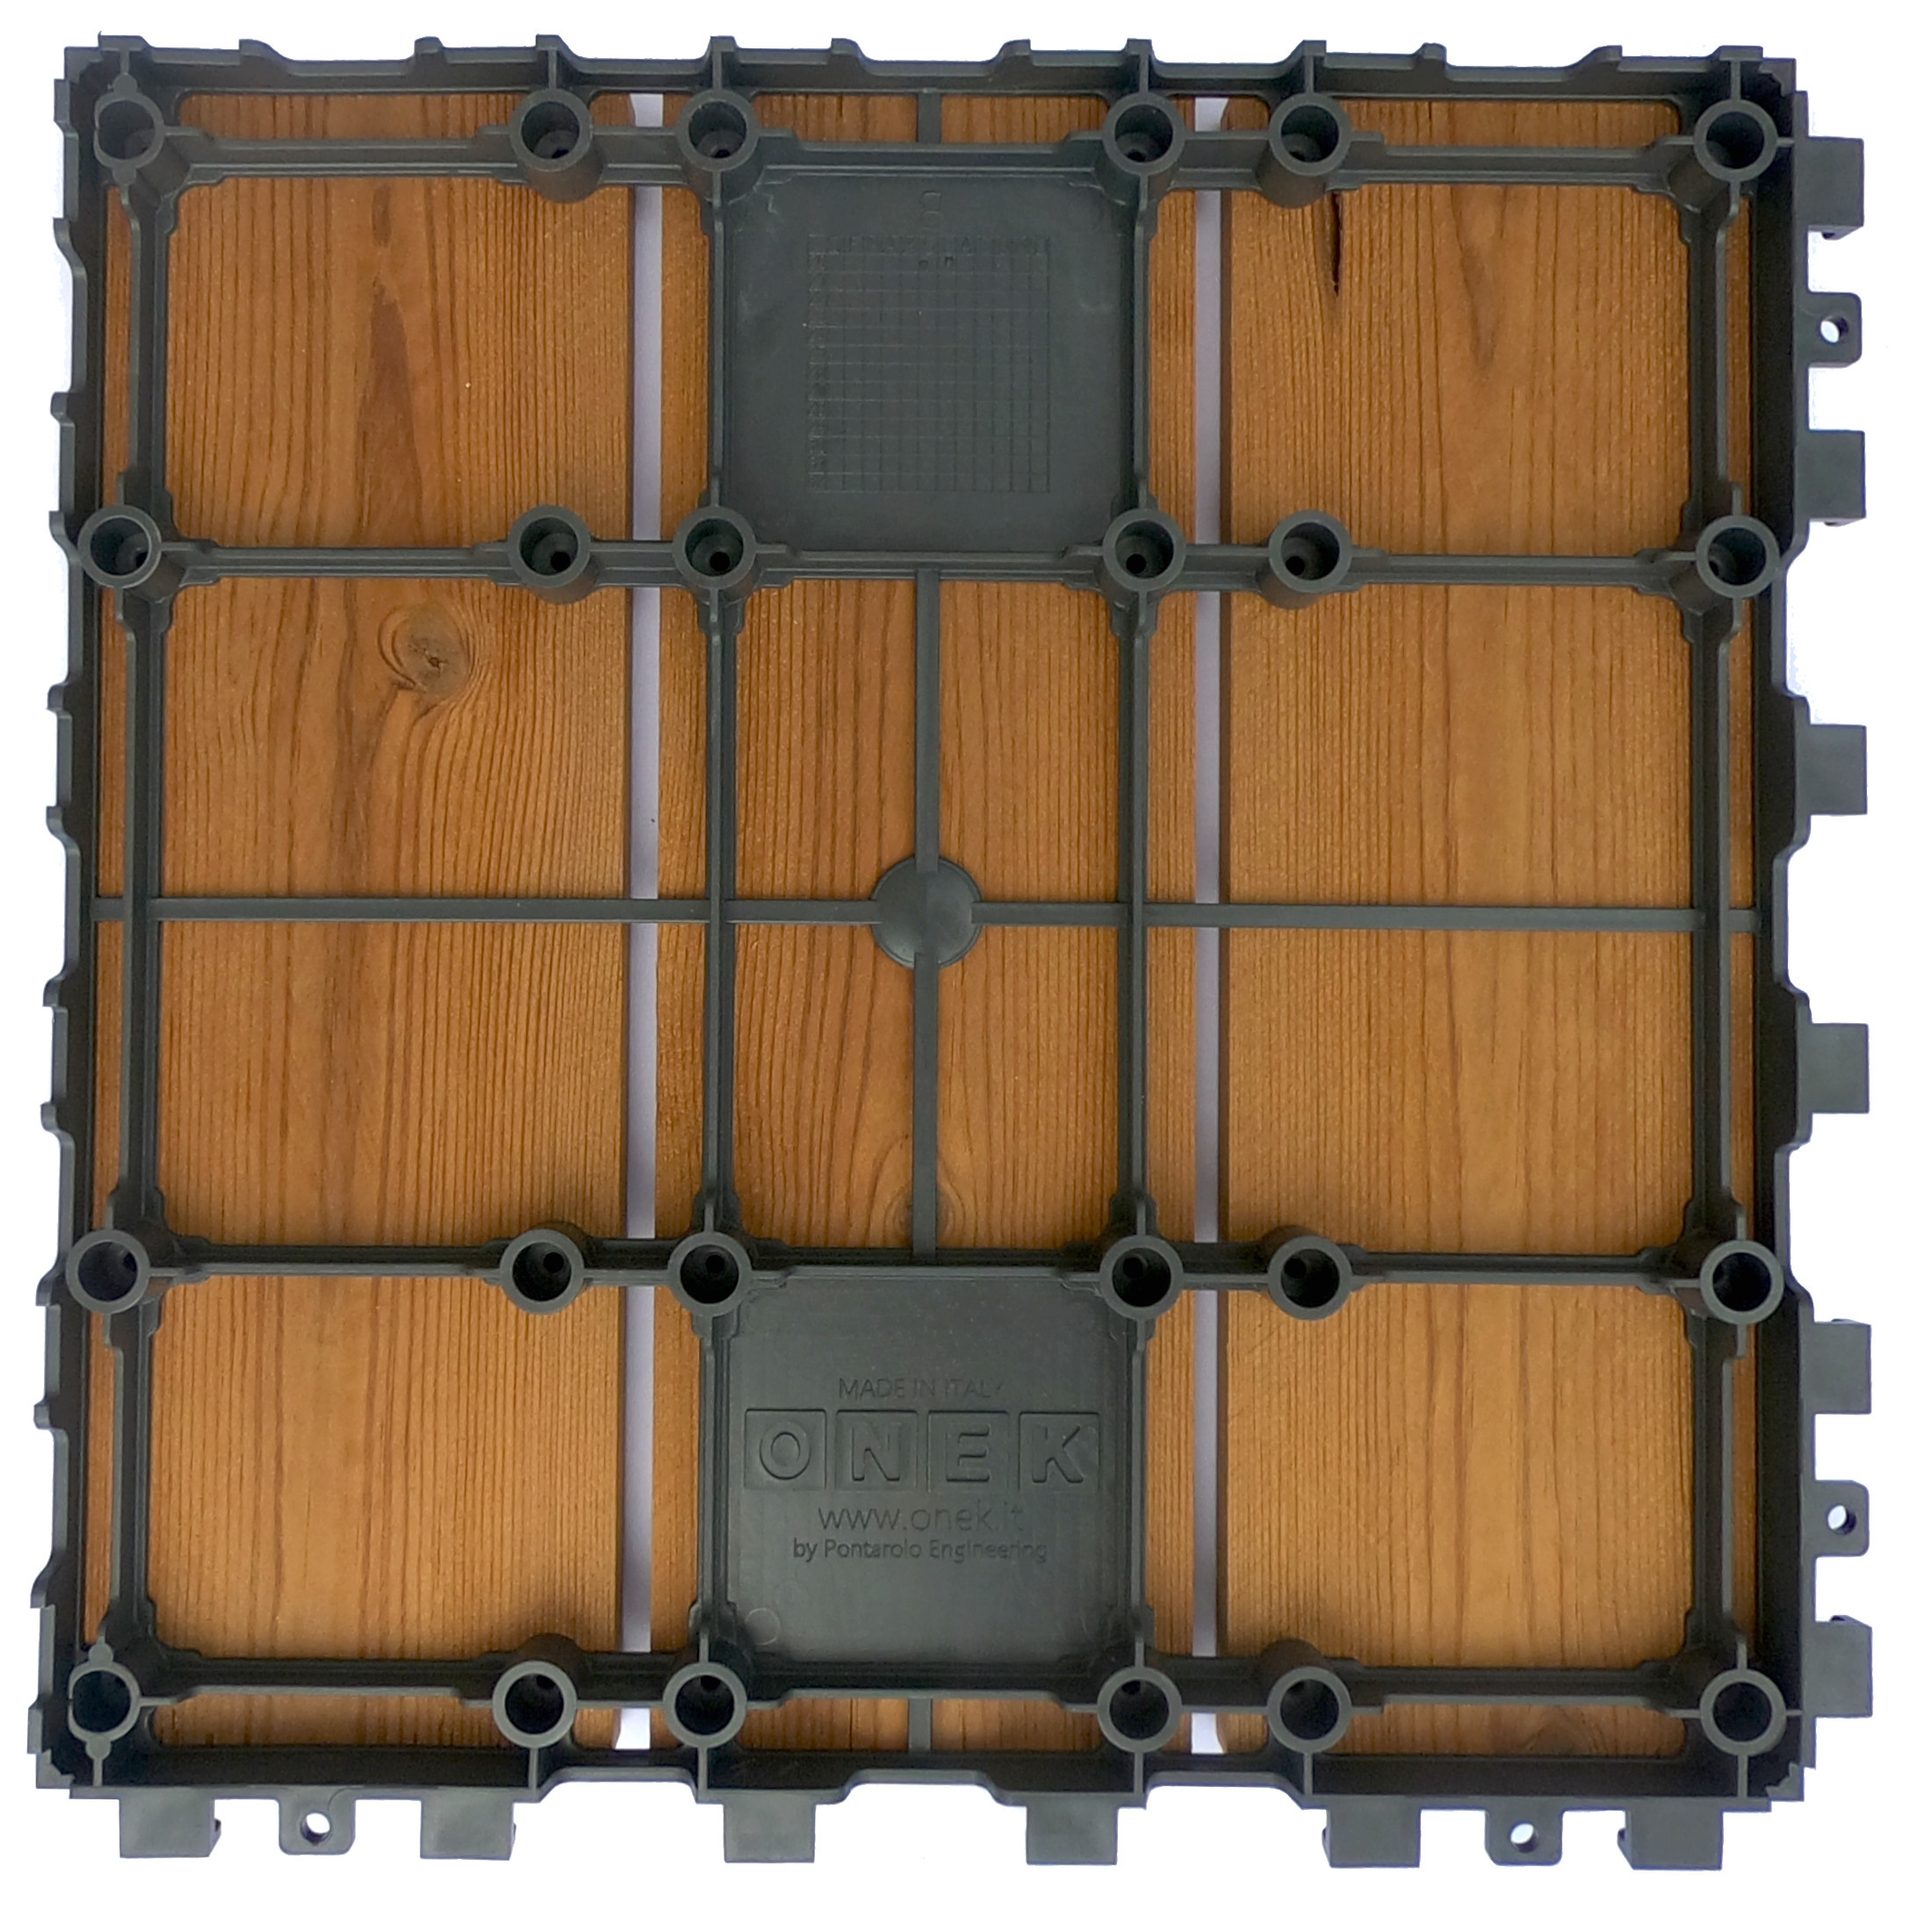 Smartdeck modular tile for outdoor flooring in thermowood pine 4